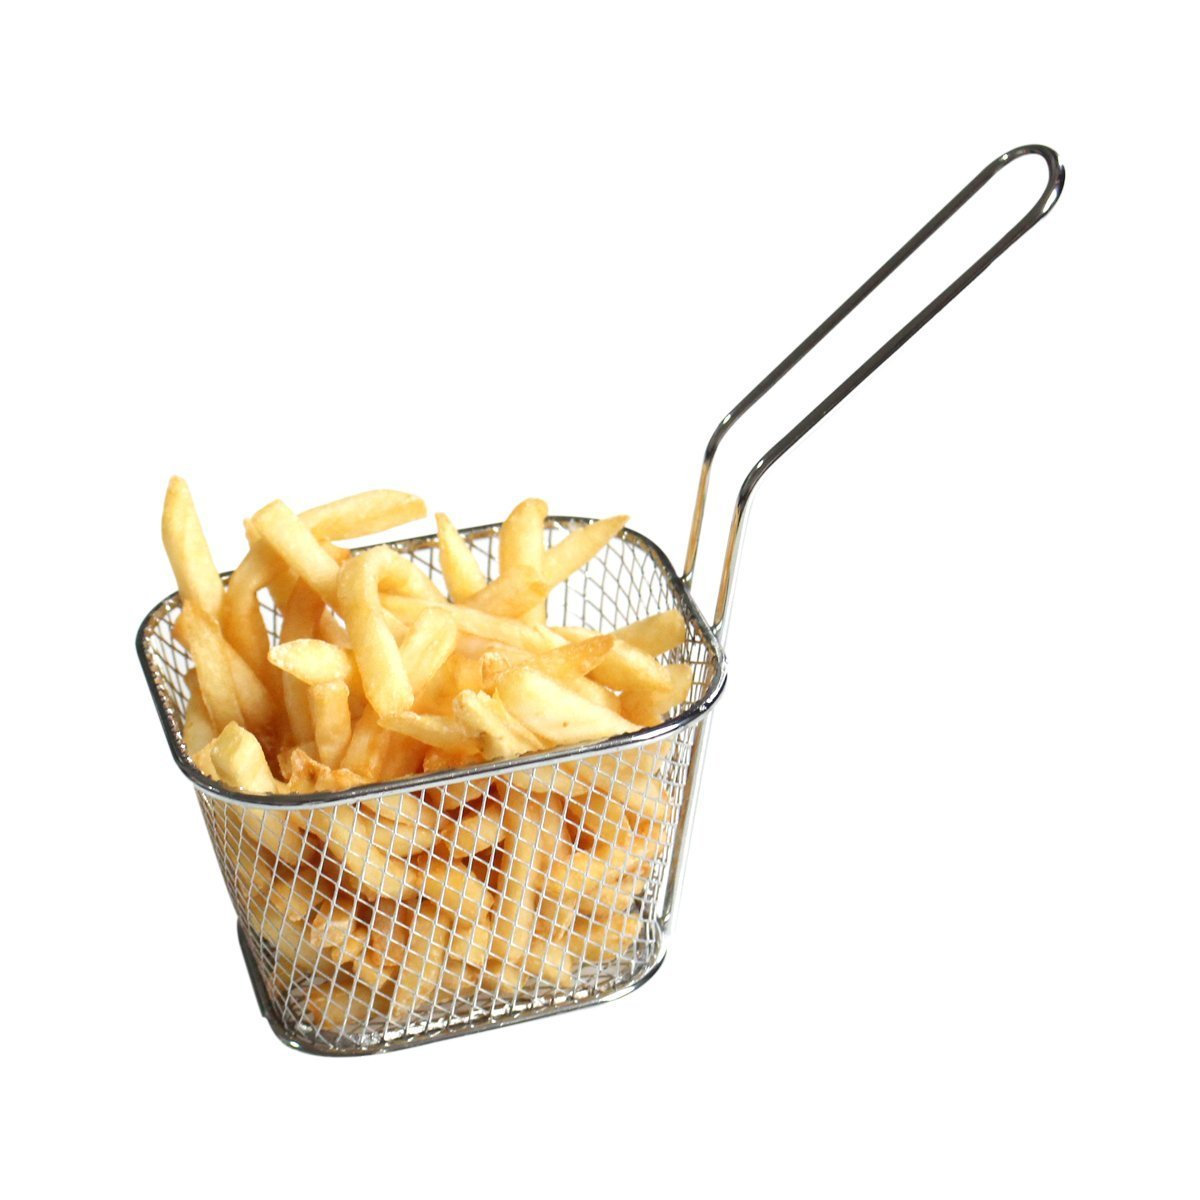 BYBYCD Stainless Steel Mini Fryer Basket Square French Fries Baskets Present Fried Chip Food Table Serving Mini Chip Baskets Serving Food Presentation Basket Kitchen (4 Pcs)